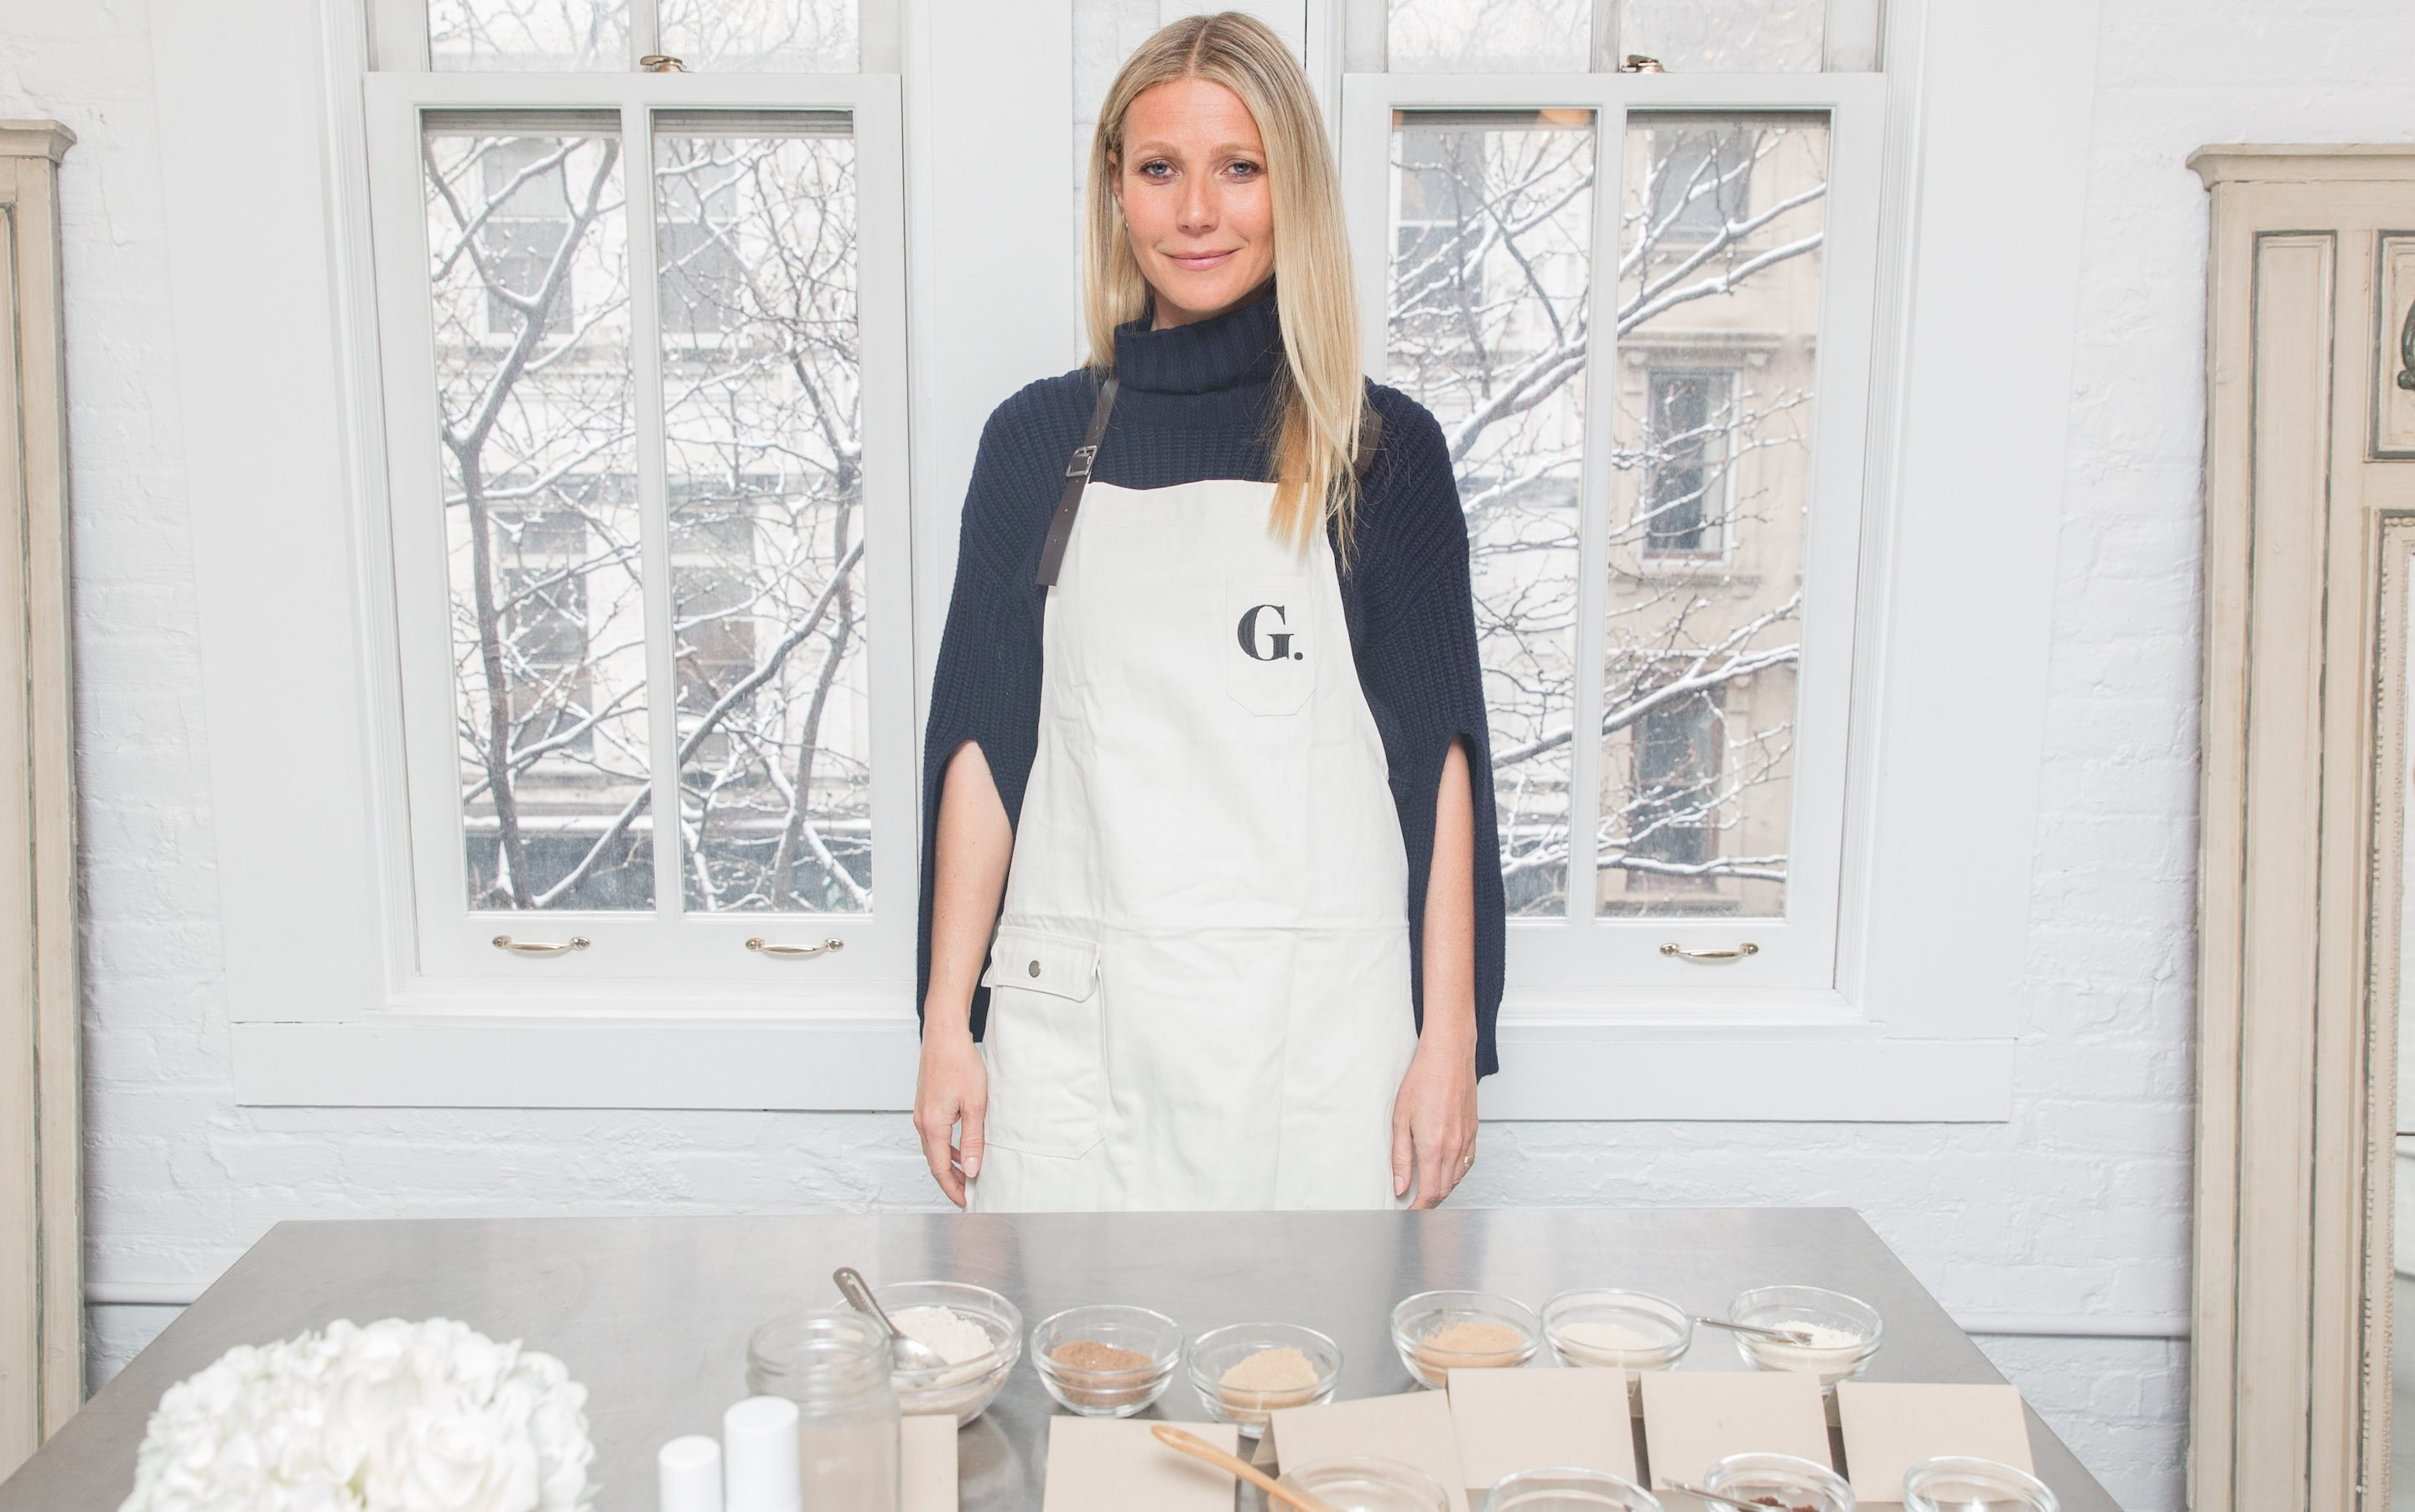 Gwyneth Paltrow Says Goop Magazine Ended After